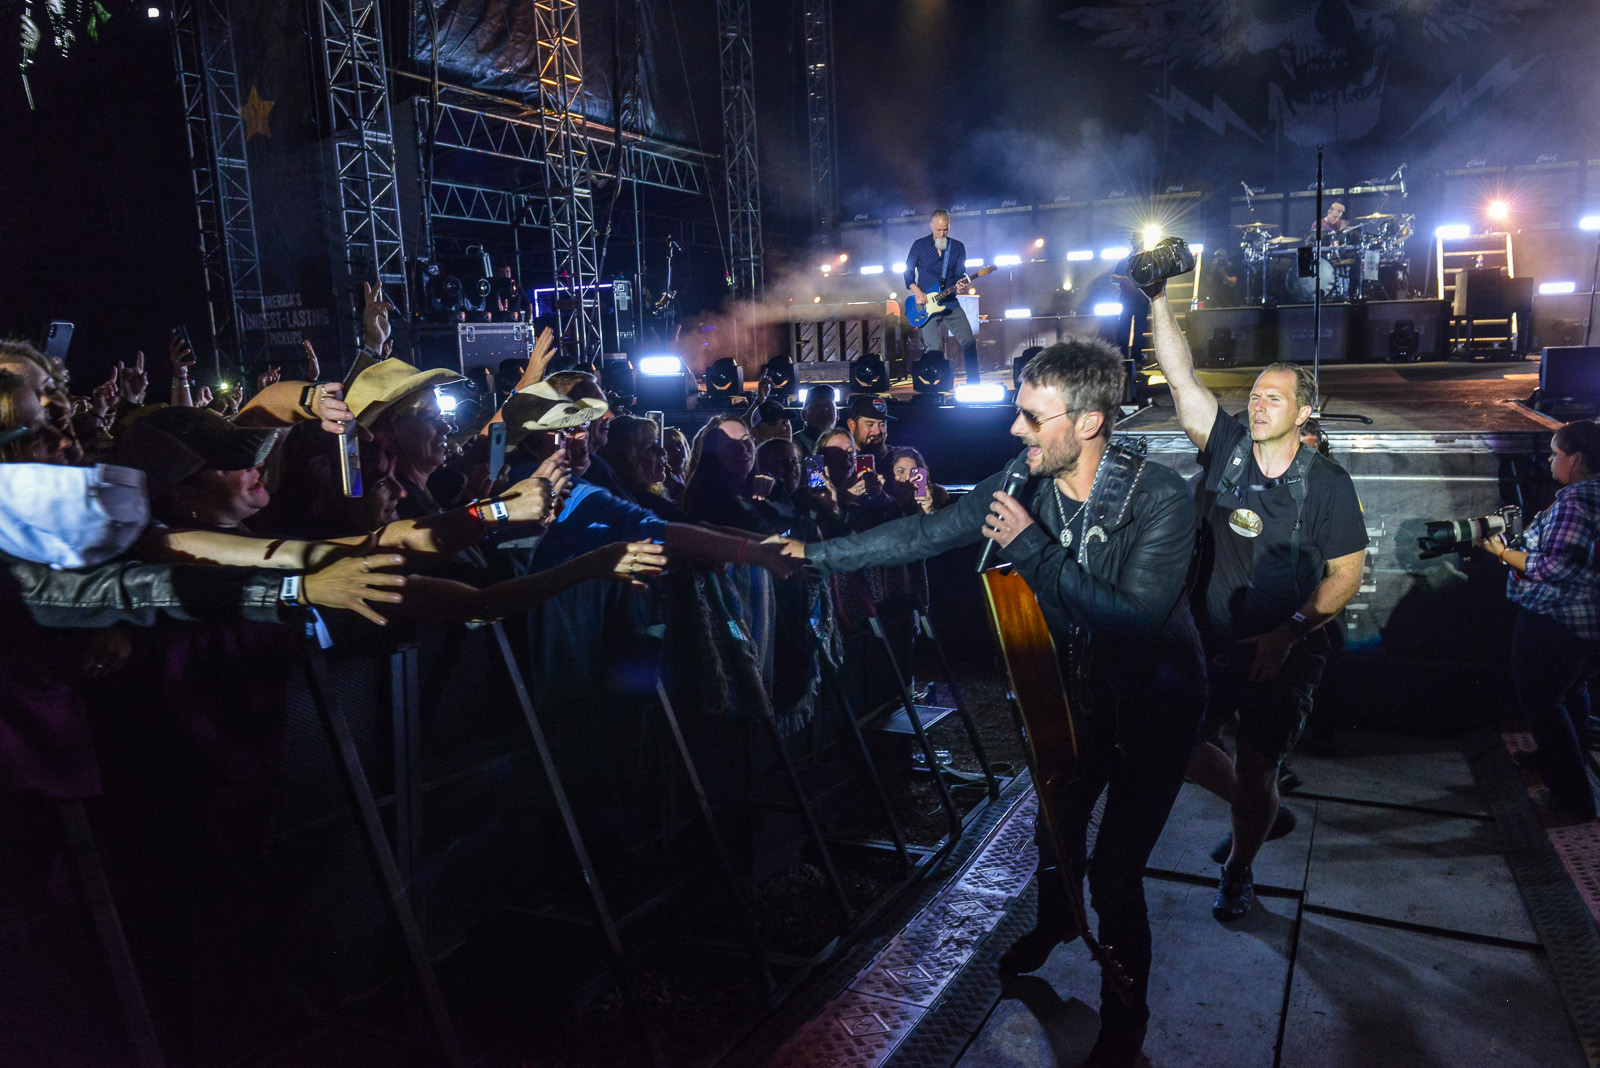 Eric Church headlined Saturday night in front of a sold-out crowd at 6th Annual Taste of Country Music Festival. Photo credit: CJ Berzin/Taste of Country Music Festival